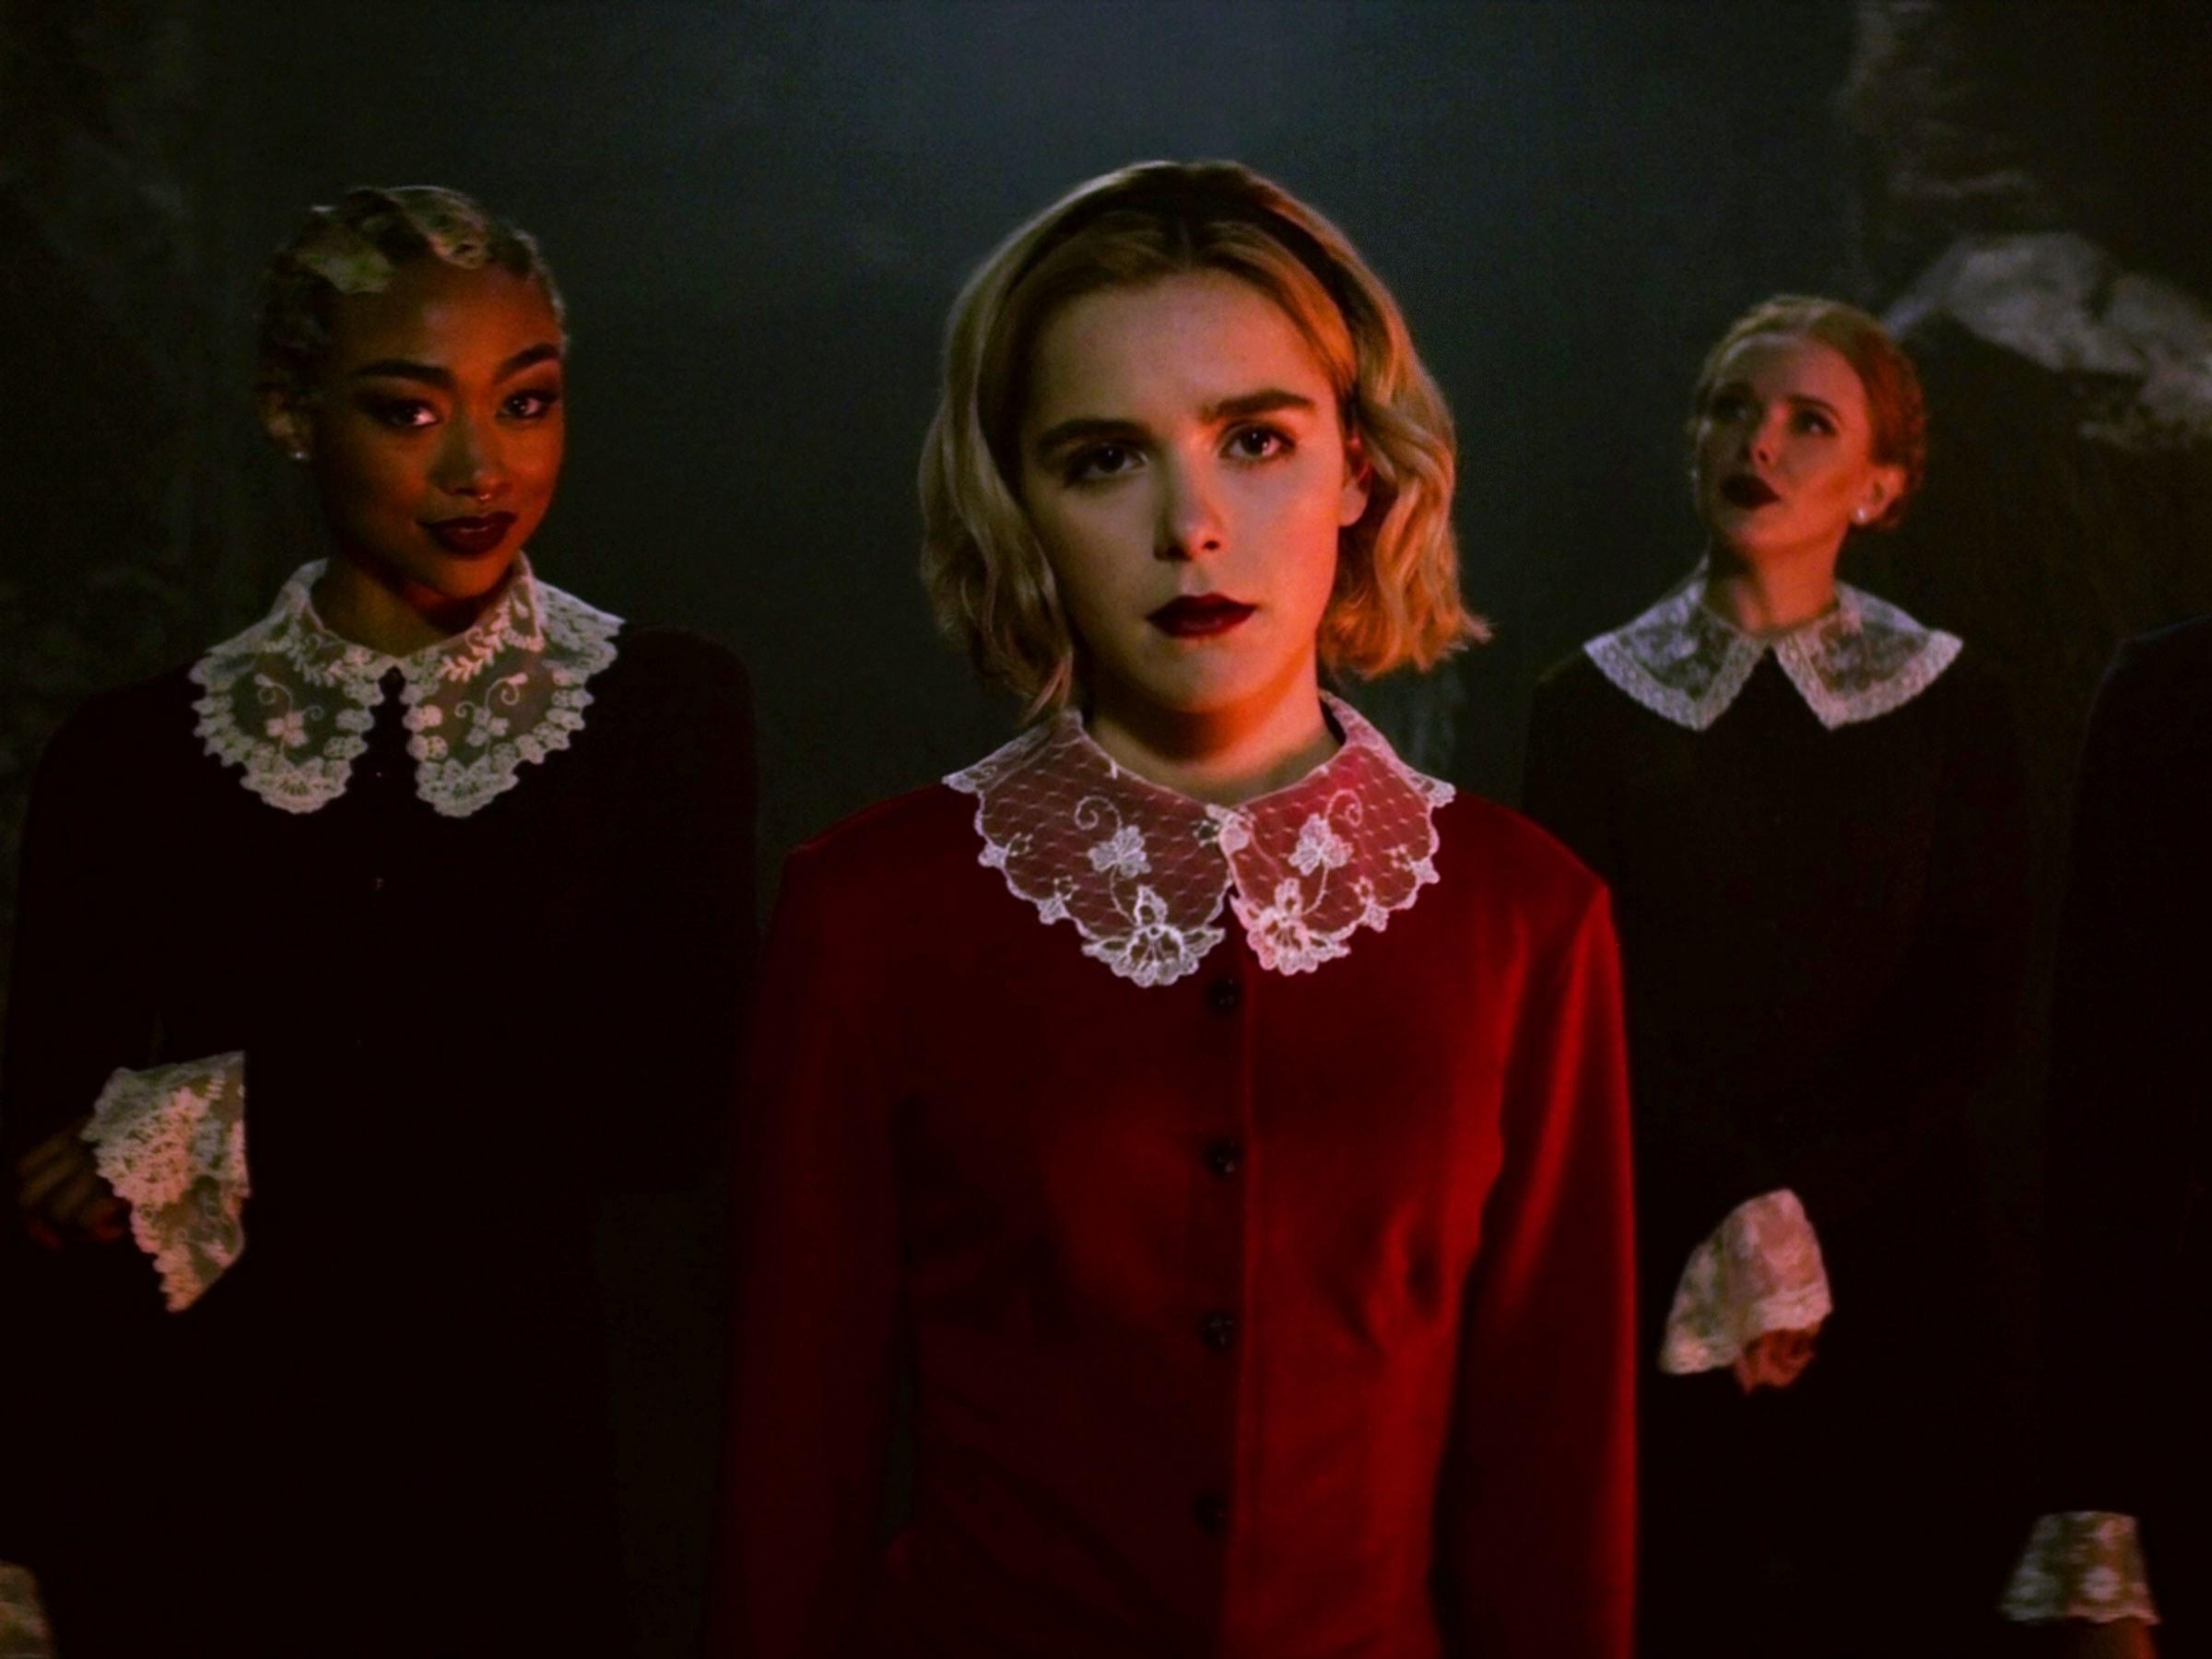 Sabrina Spellman. Image courtesy of Wires.com